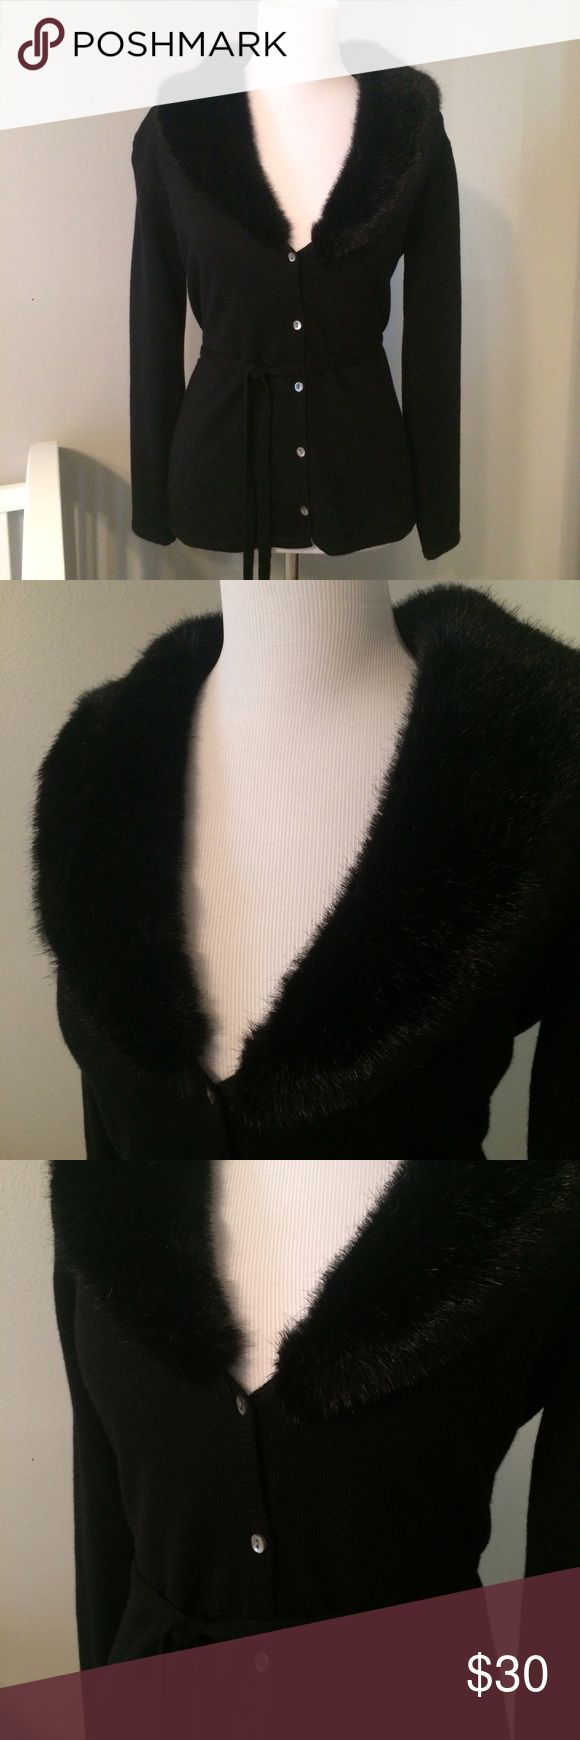 Faux Fur Collar Cardigan From Eddie Bauer, a nice black cardigan with a fun faux fur collar that wraps around the back. Comes with a removable tie around the waist. Excellent condition- no fading, holes, stains. Eddie Bauer Sweaters Cardigans